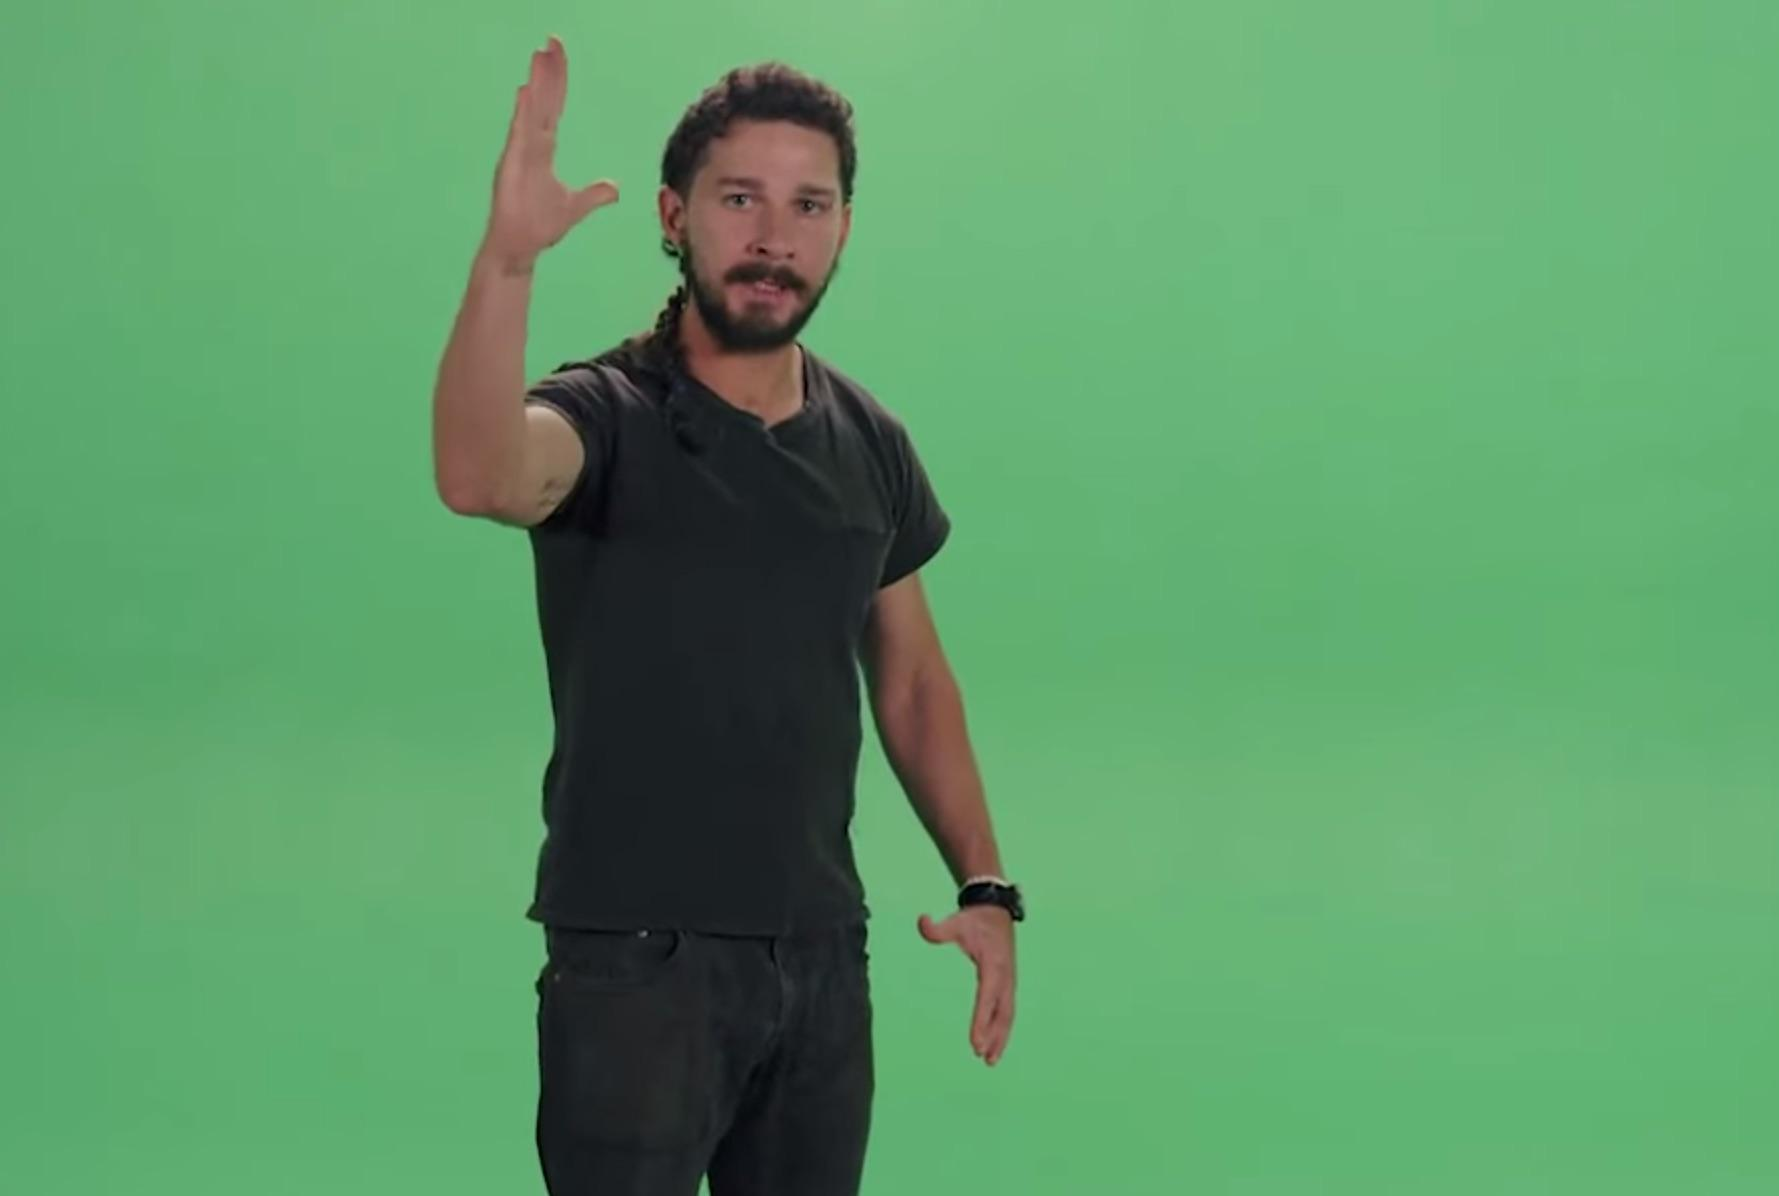 The Real Story Behind Shia LaBeouf's Hilarious 'Motivational' Rant